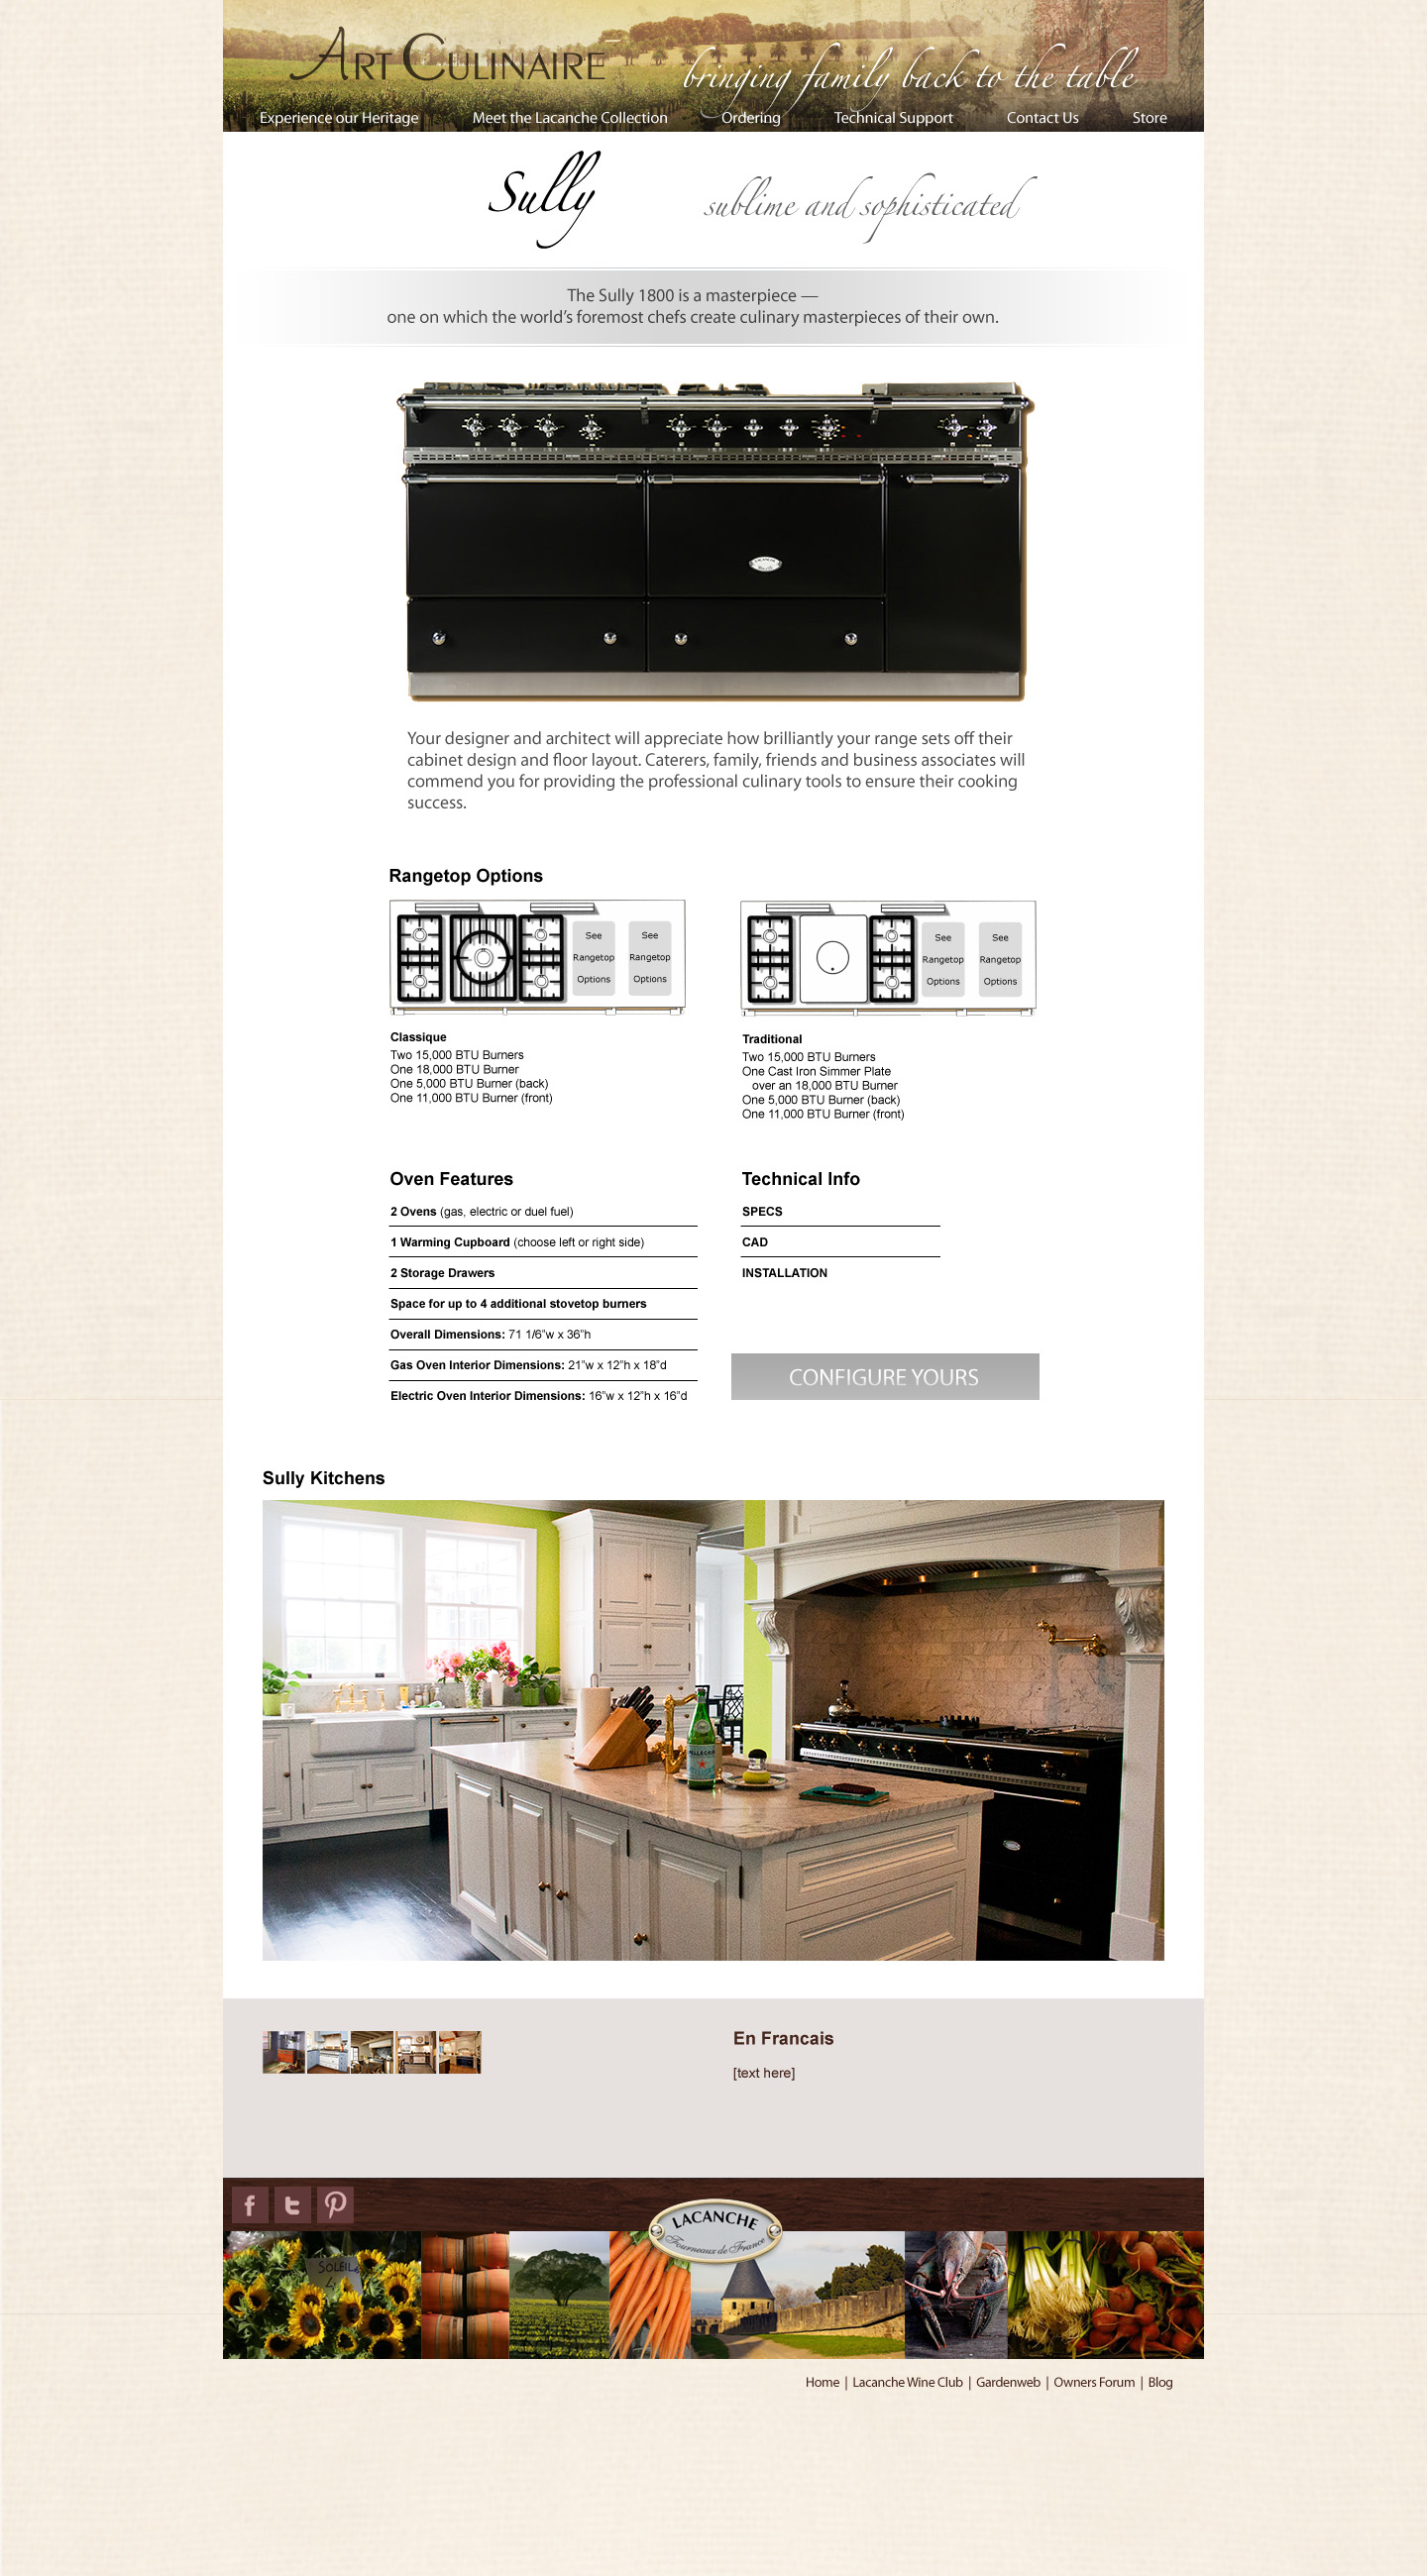 Art Culinaire Website Design and Layout